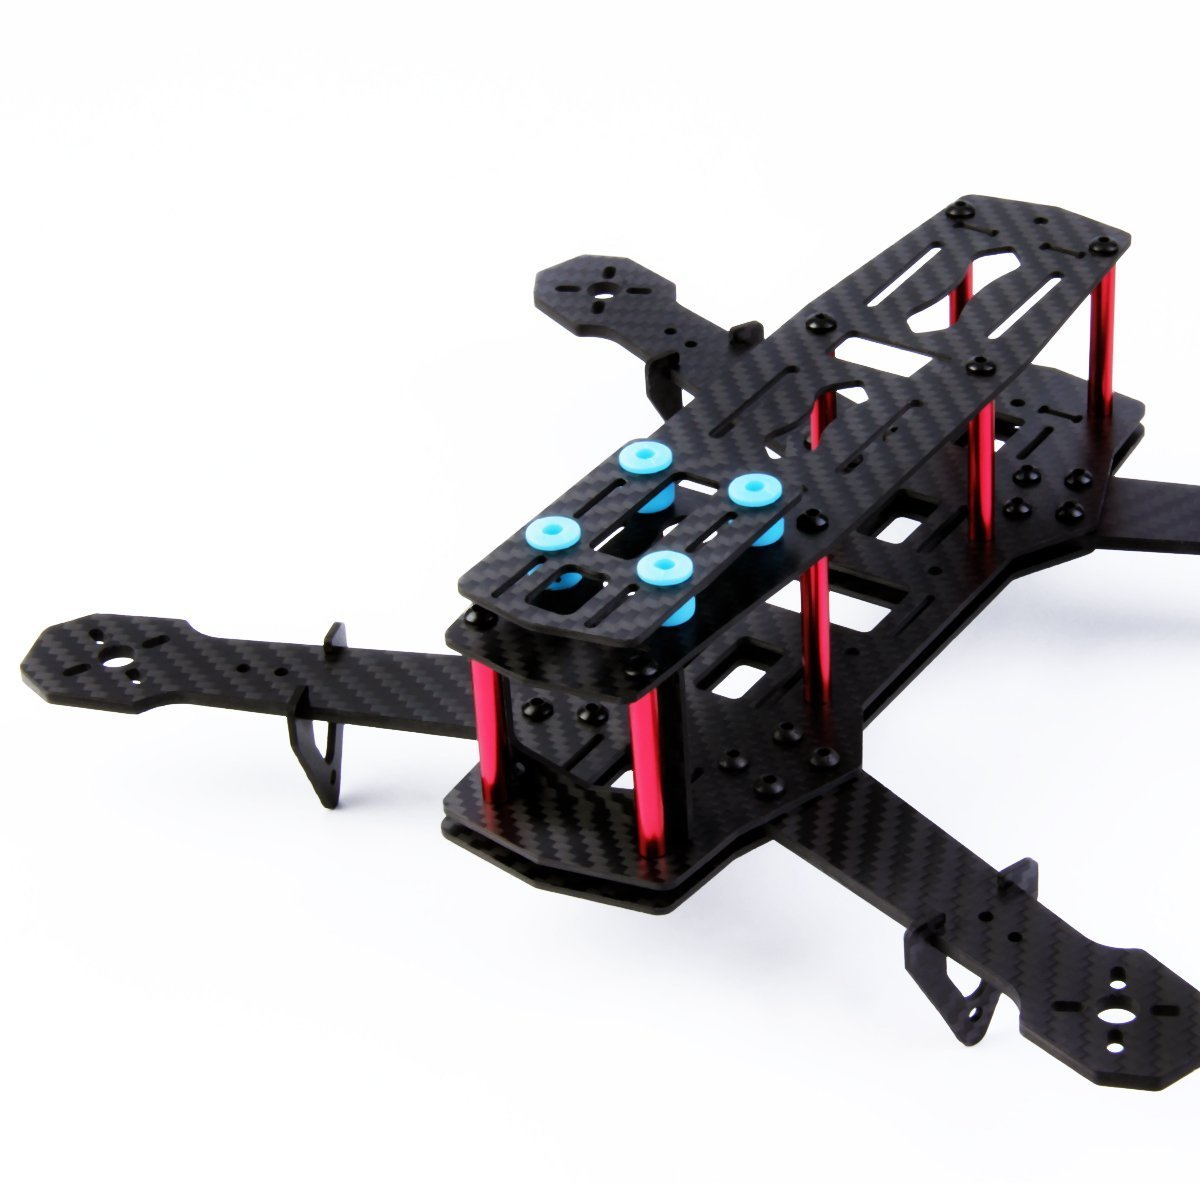 YKS Carbon Fiber Mini 250 Quadcopter Frame Kit: Amazon.com ...